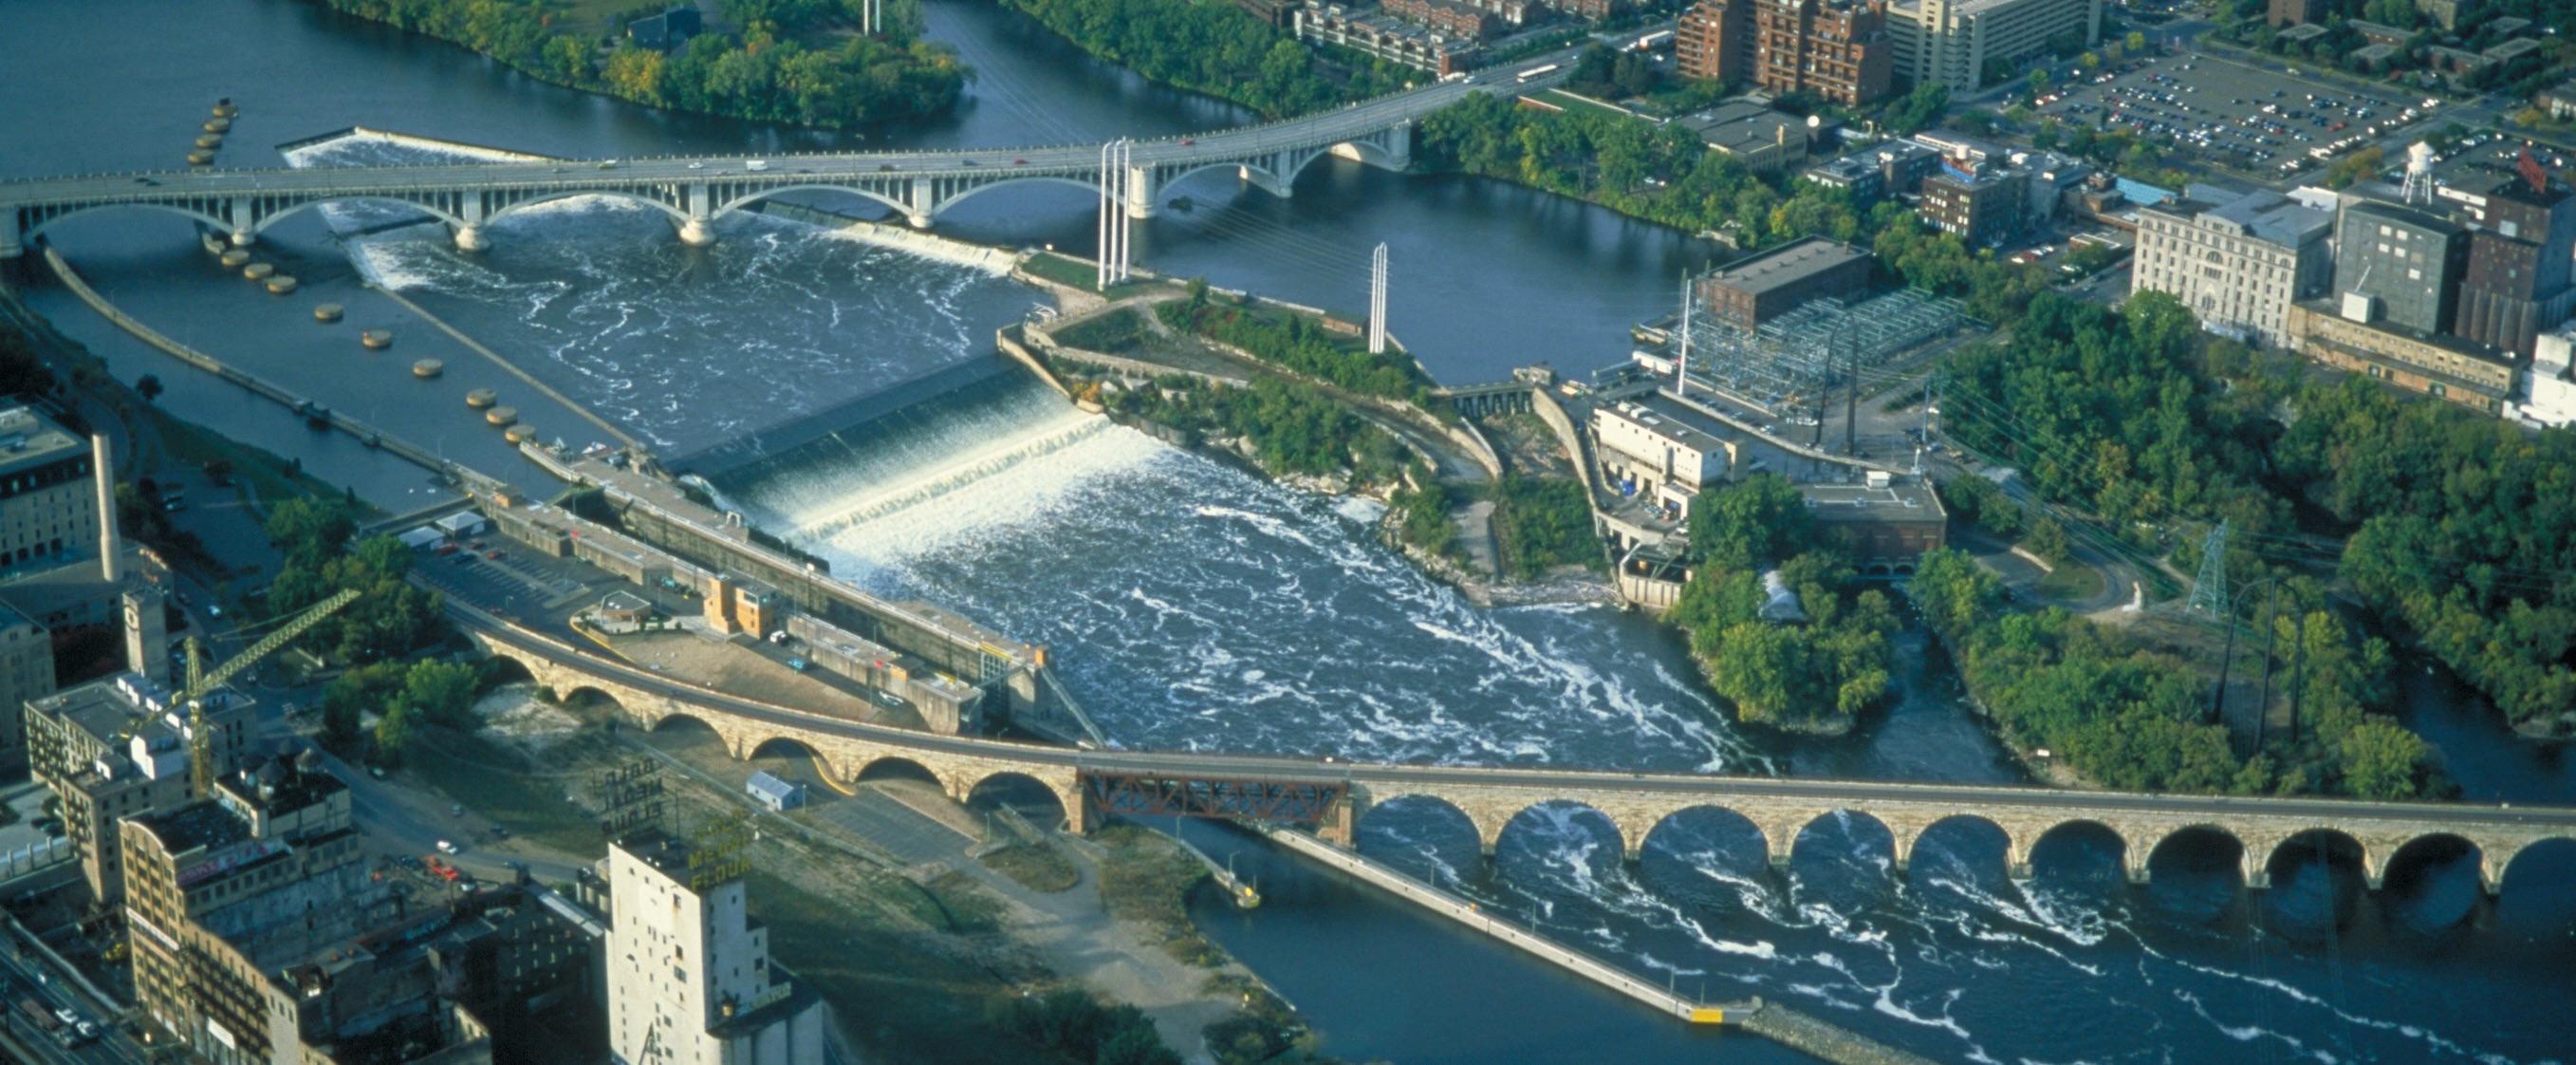 Public Meetings Scheduled For Lock And Dam Disposition